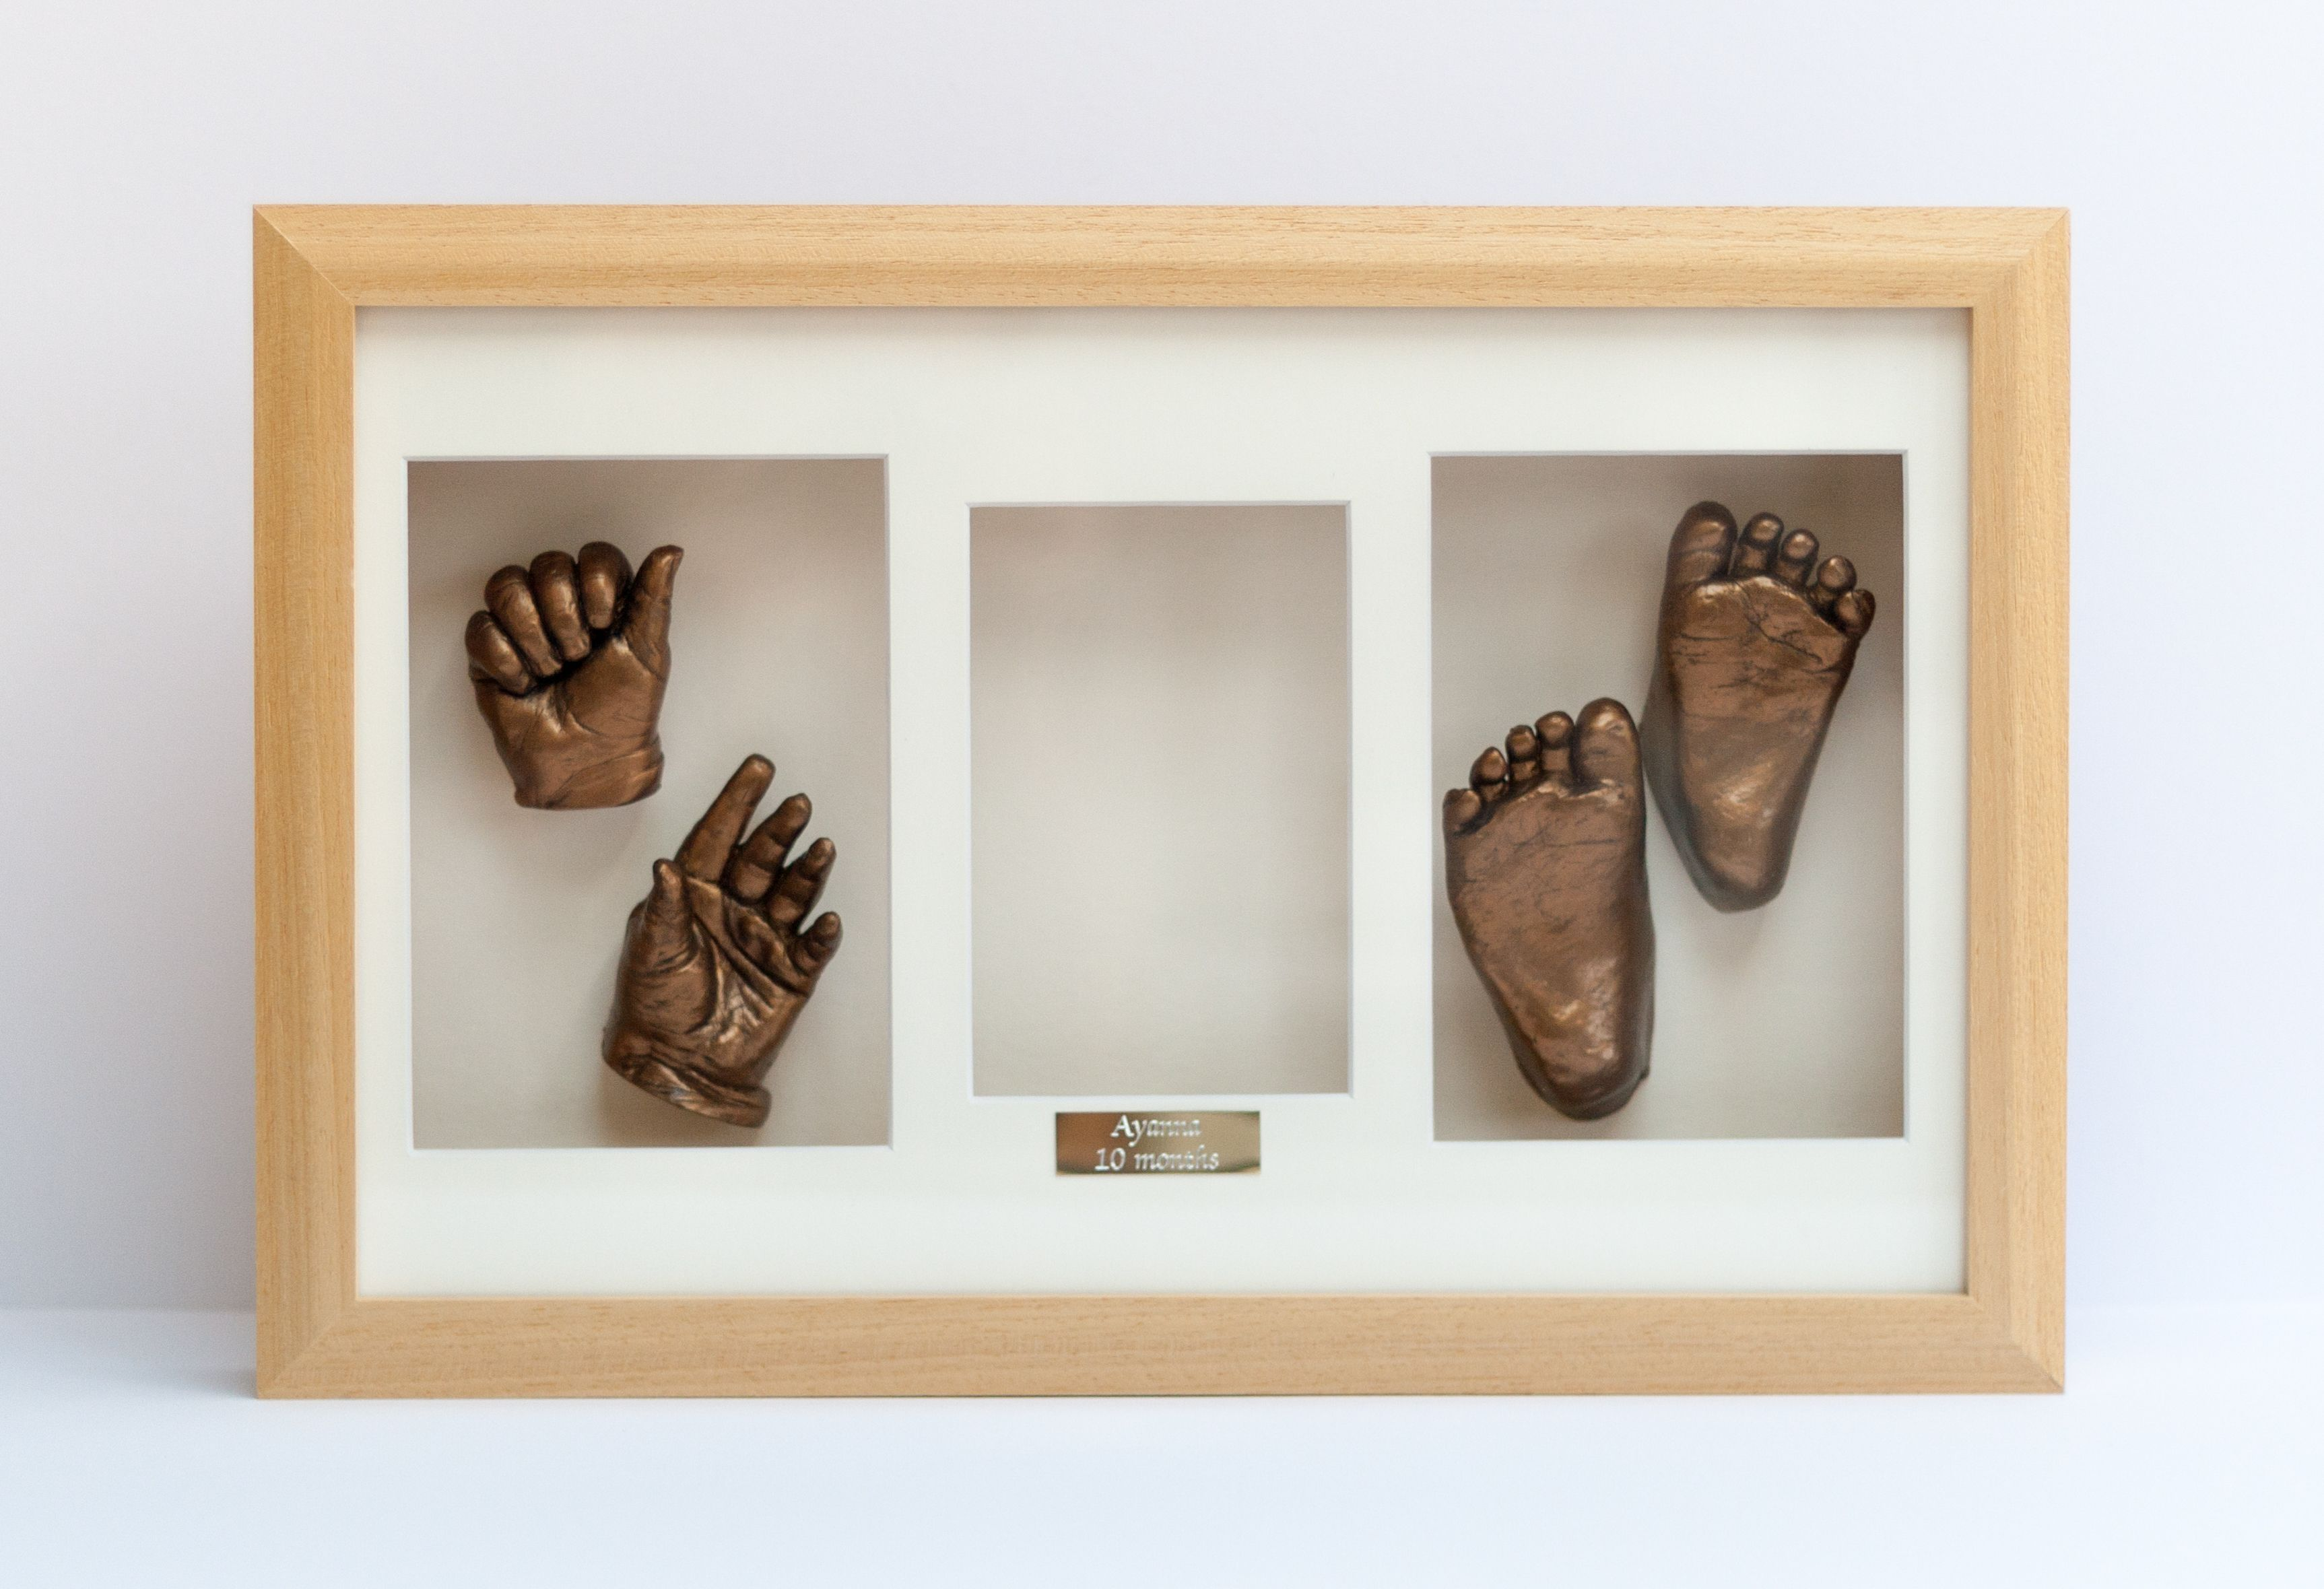 2 Hands and 2 Feet in a 16 x 10 Frame with Photo Aperture and ...